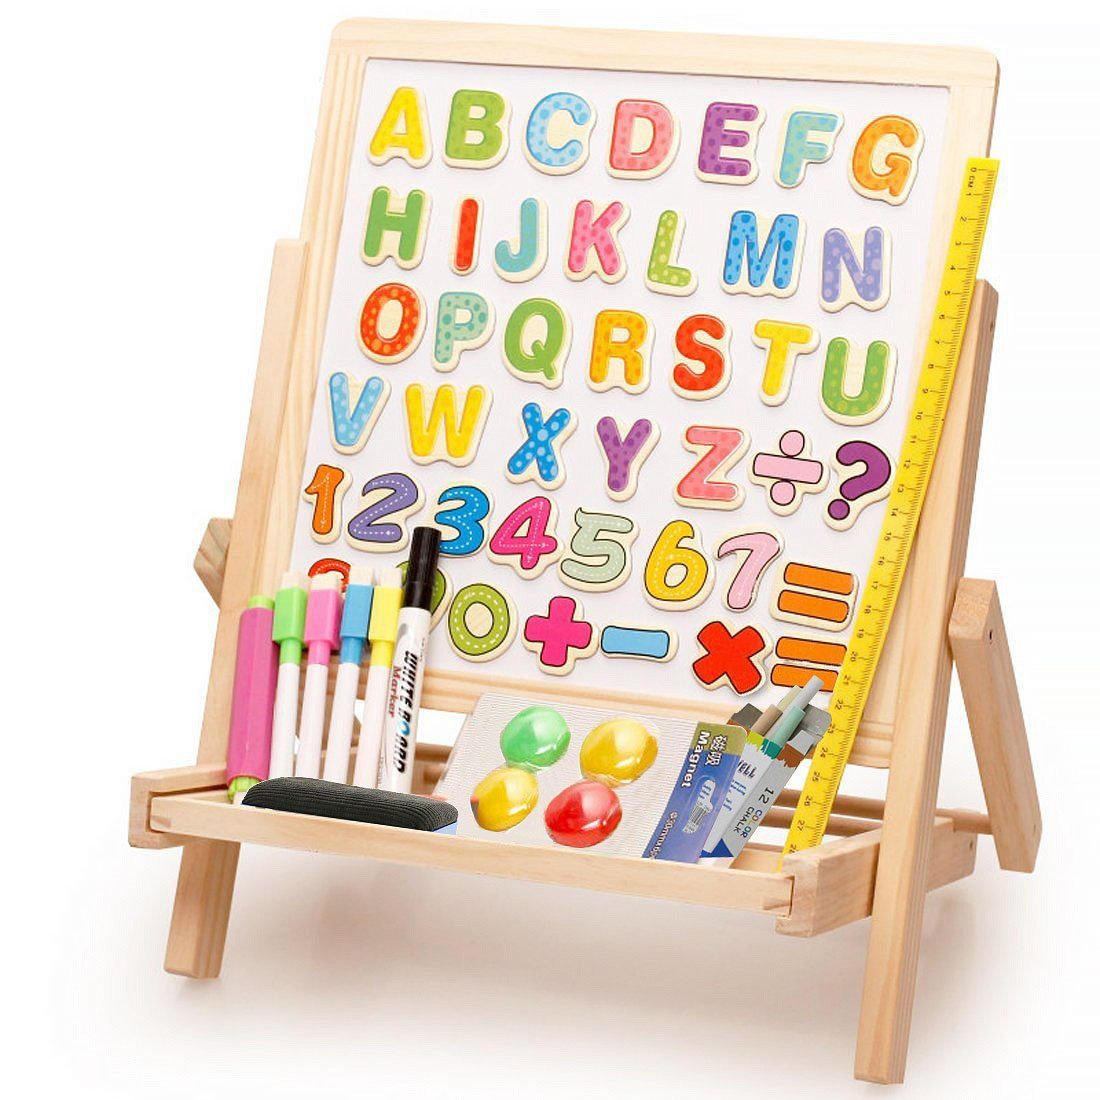 Lewo 3 in1 Wooden Magnetic Art Easel Double Sided Drawing Whiteboard Toys for Kids